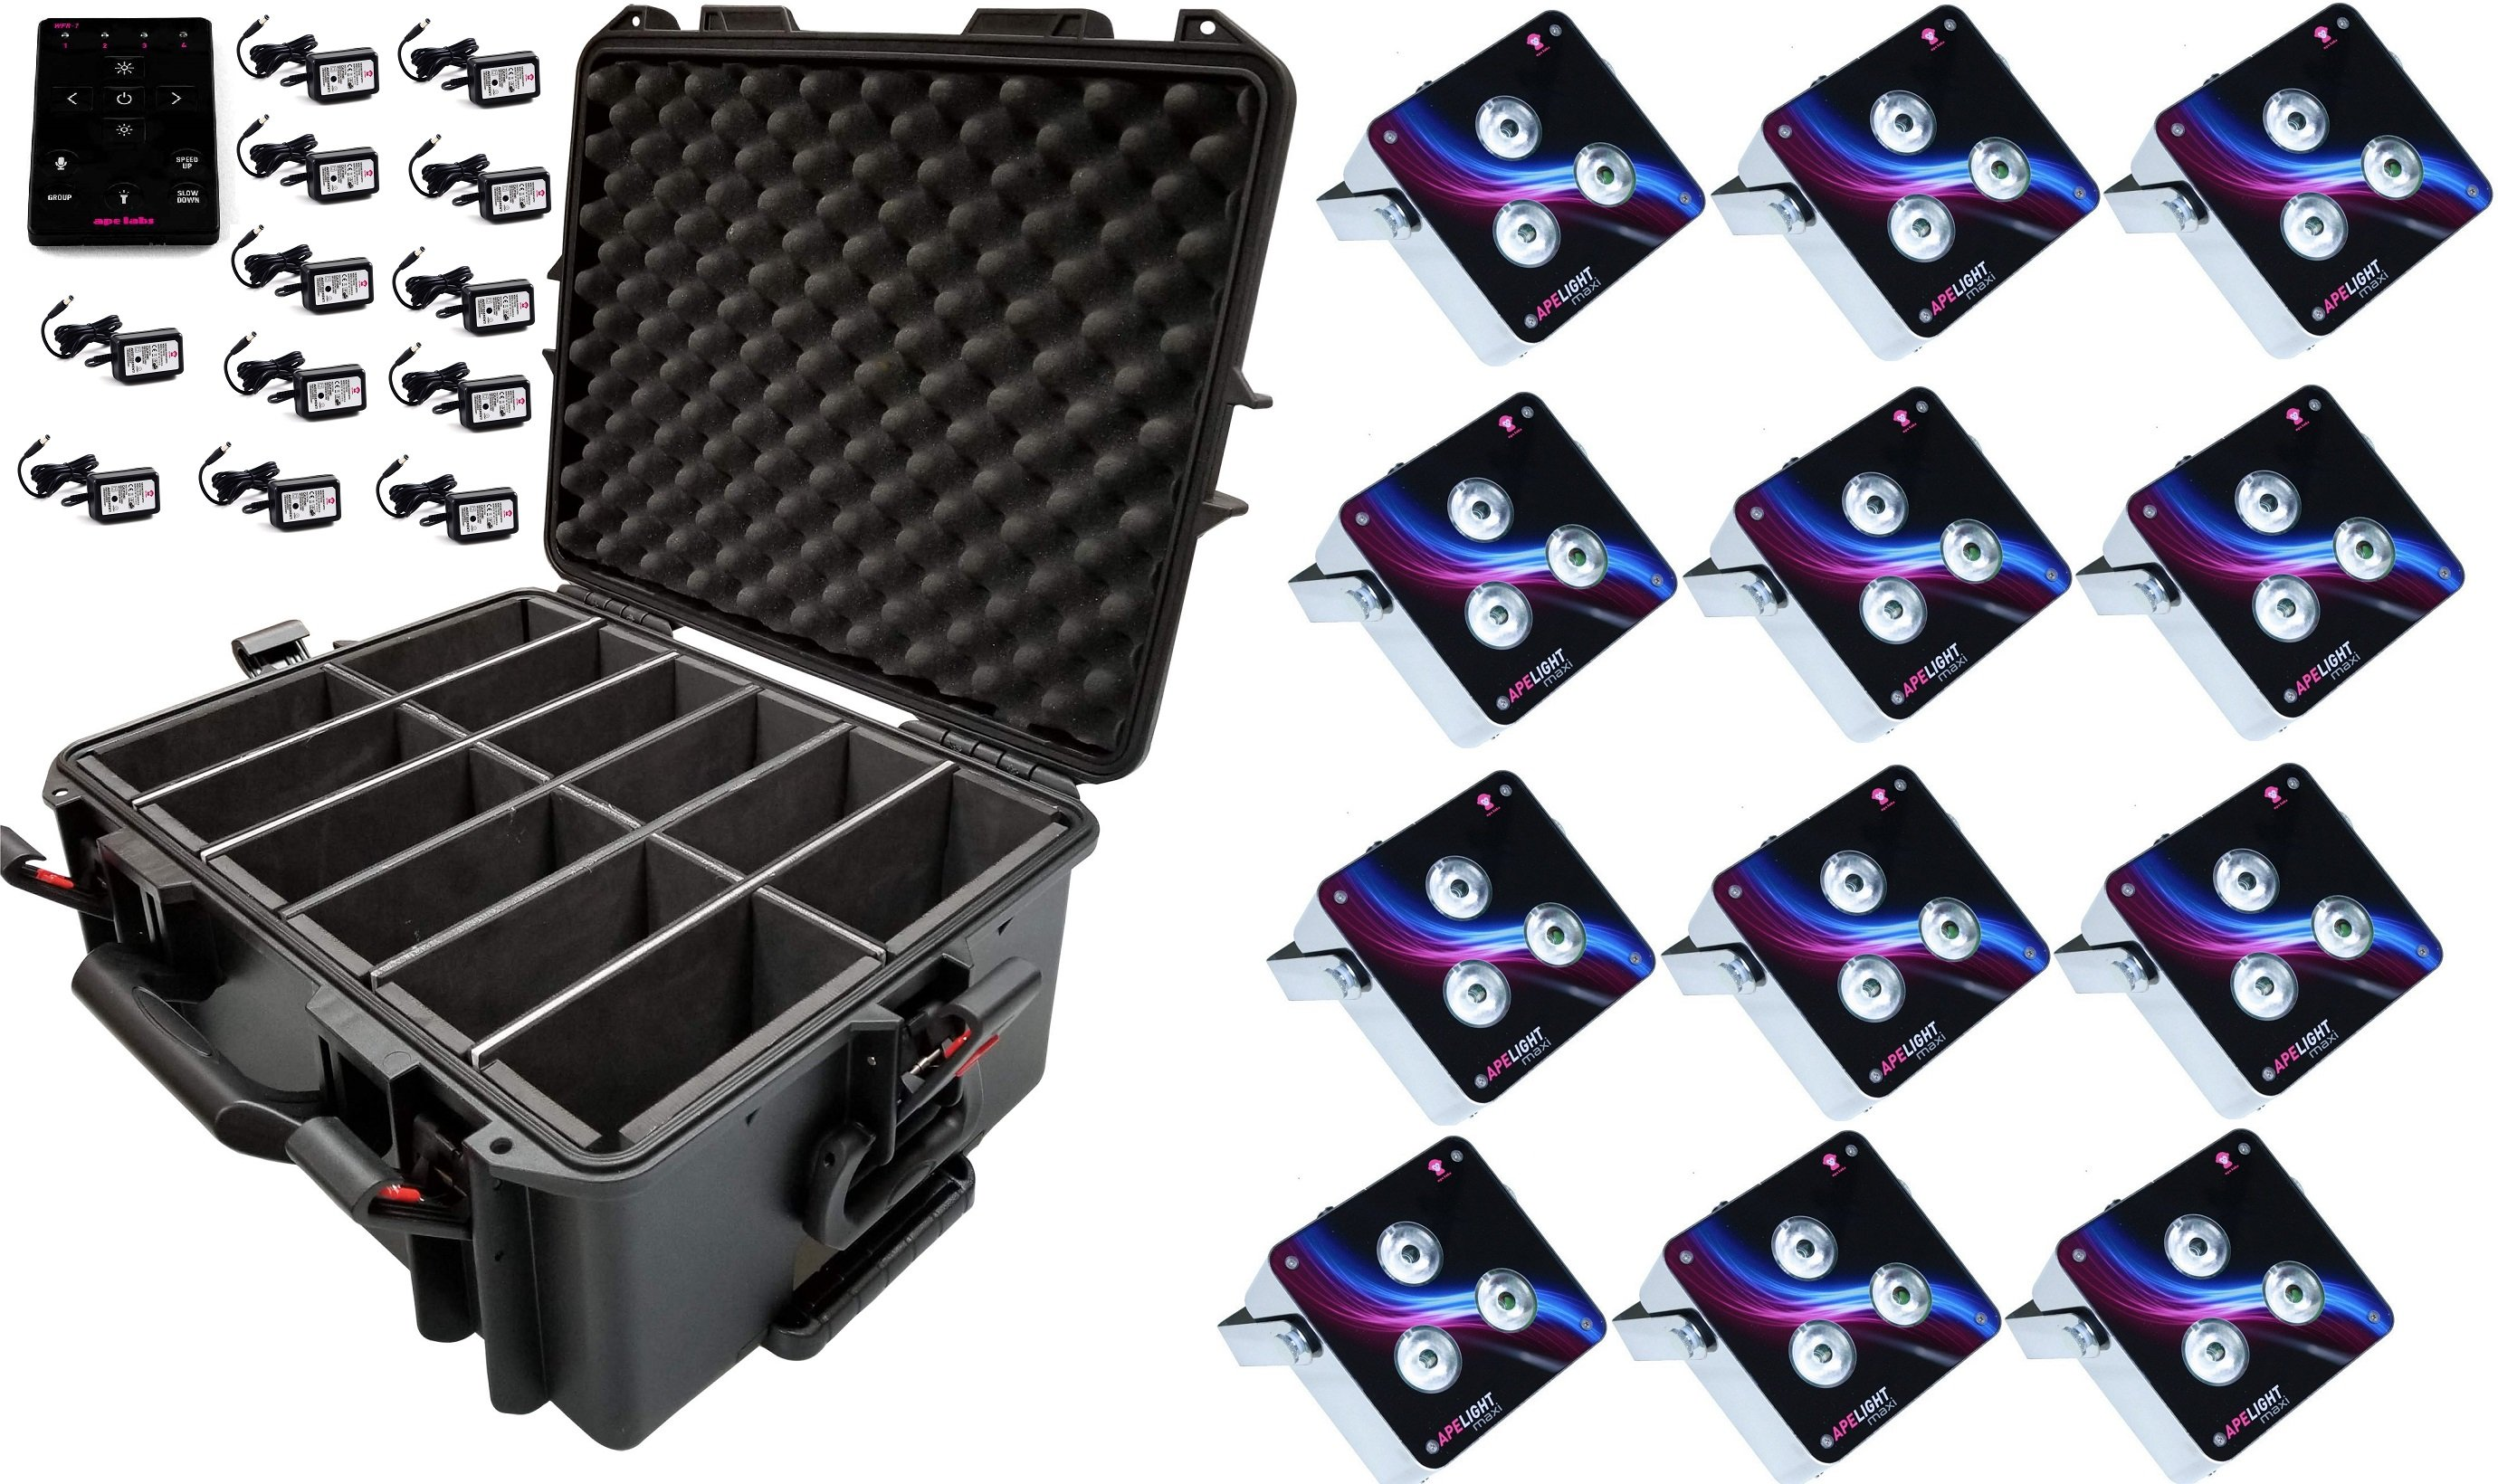 ape-labs-maxi-12pc-package.jpeg